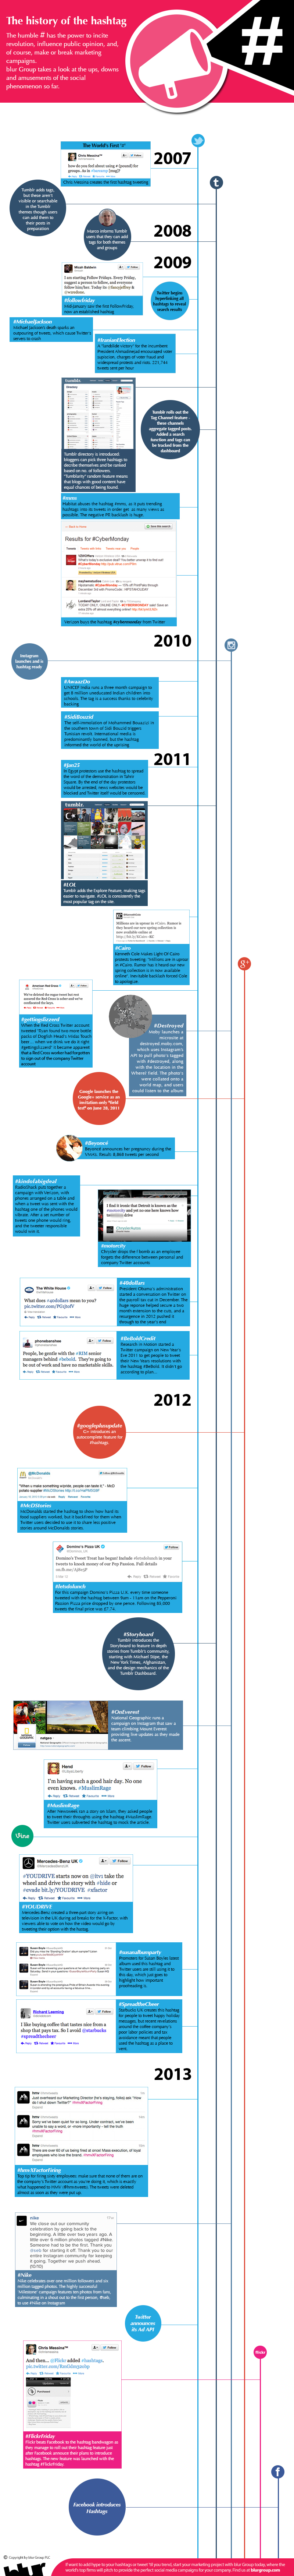 Infographic: The Revolution Of Hashtag, The history of hashtag from 2007 to 2013